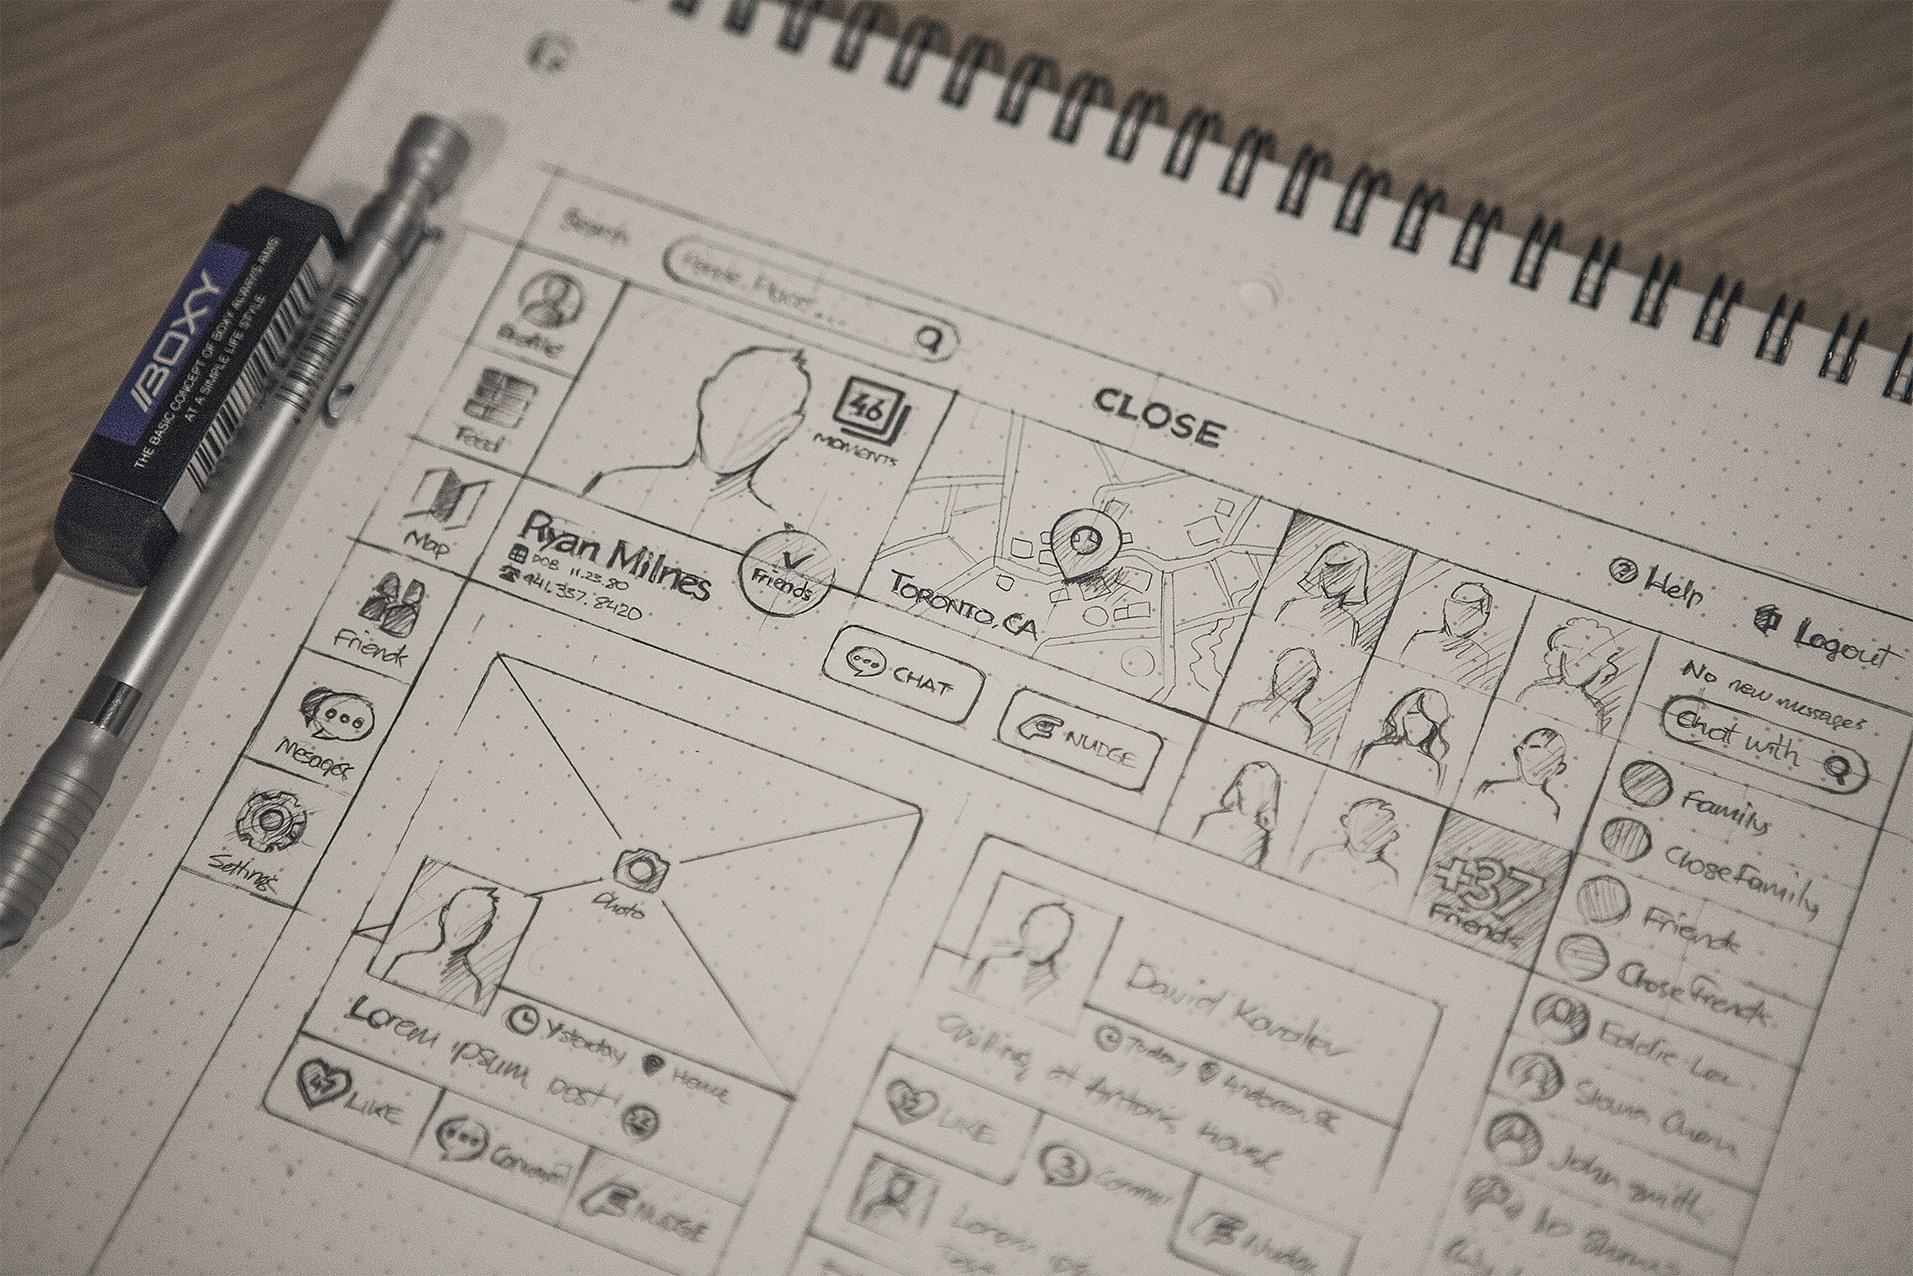 Sketching user-flow and information architecture, components of the UX design process